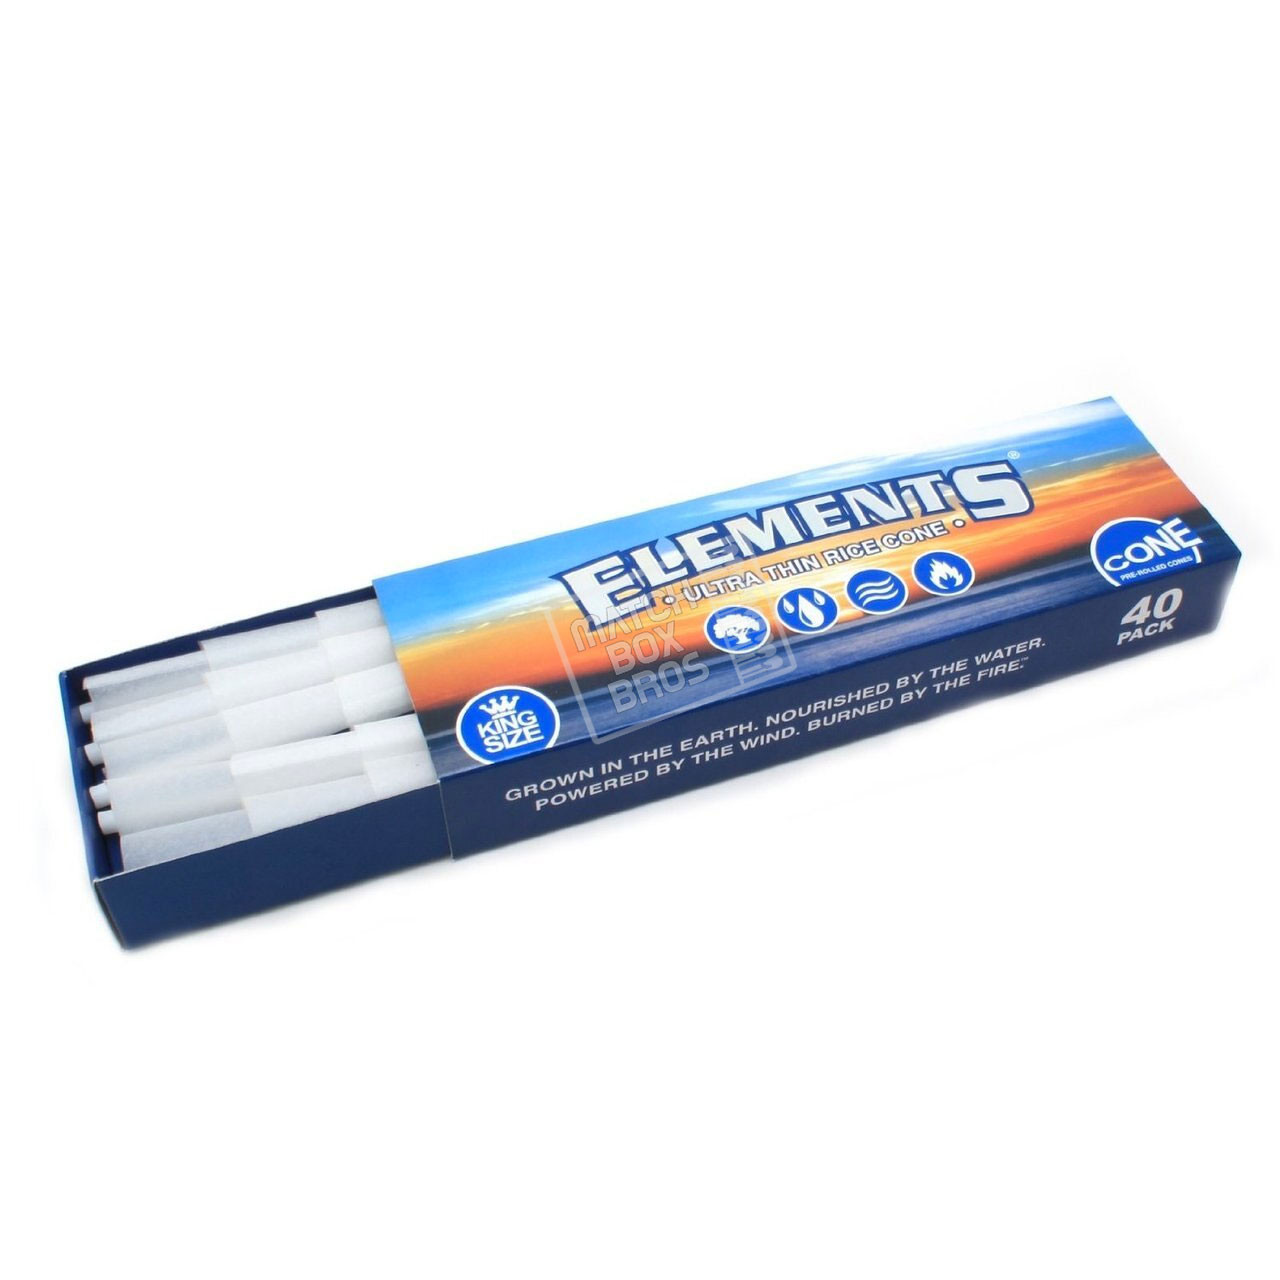 Elements KS Cones 40/Pack